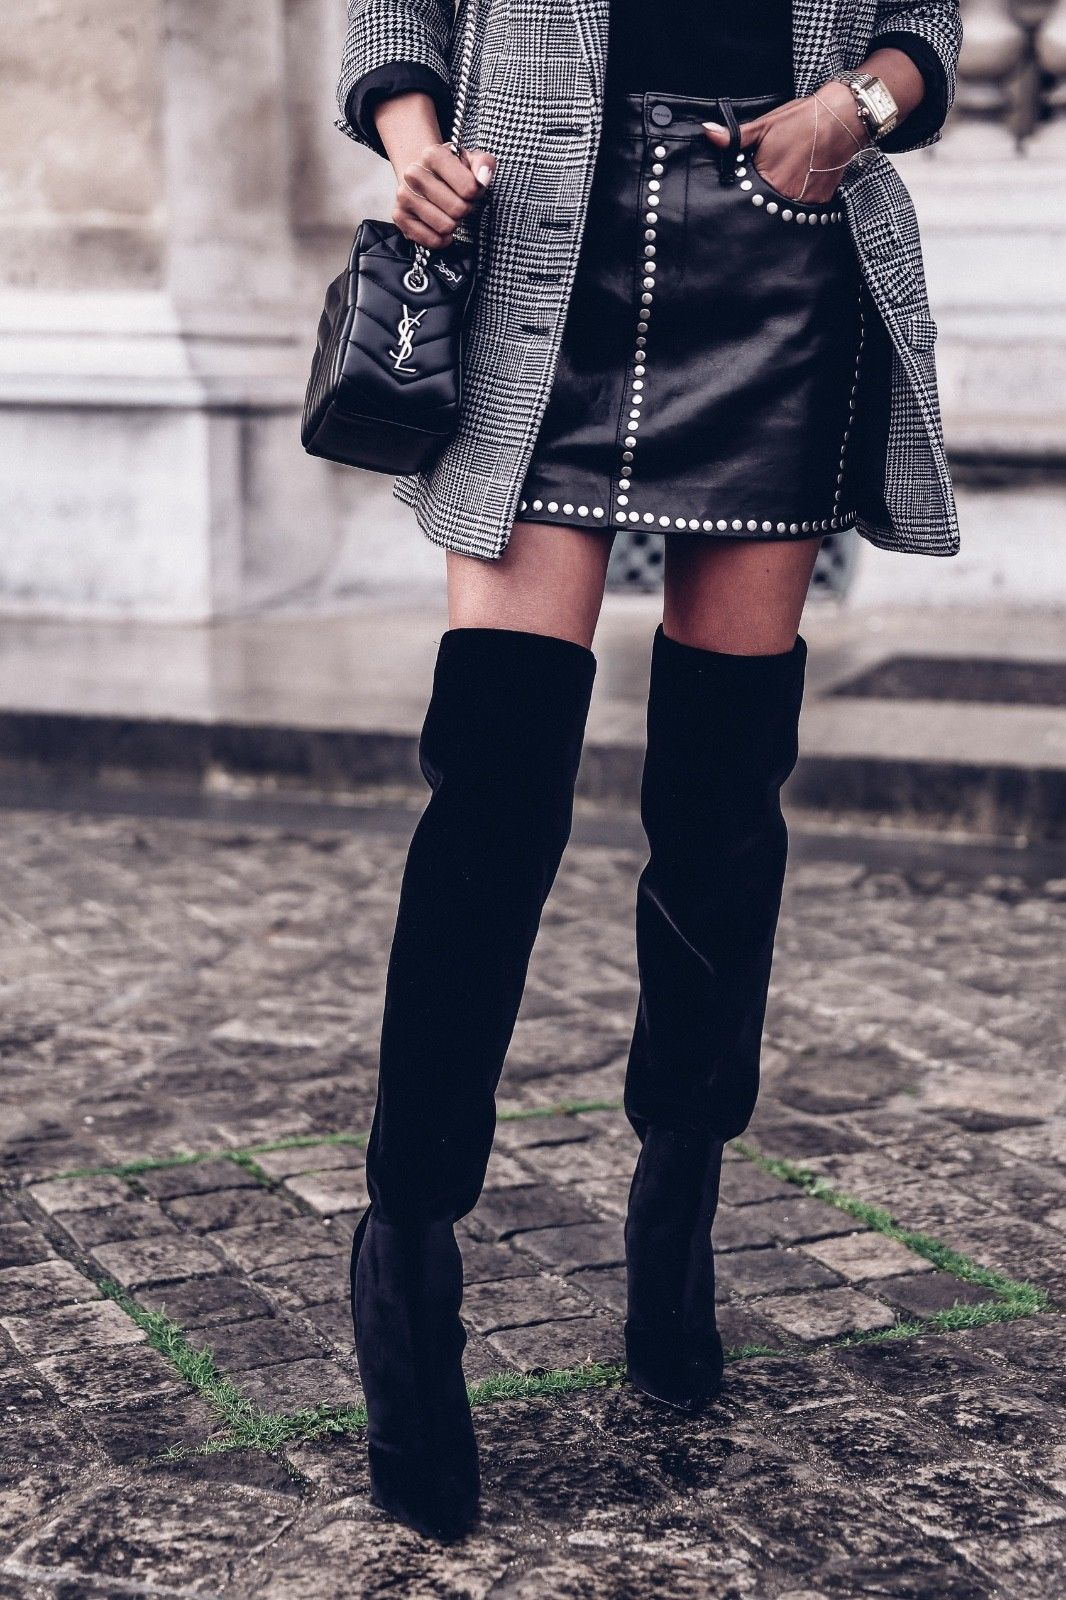 711eb8d0df0 studded leather skirt with knee highs. YSL Saint Laurent Niki Black Velvet  Over the Knee Boots - RunwayCatalog.com